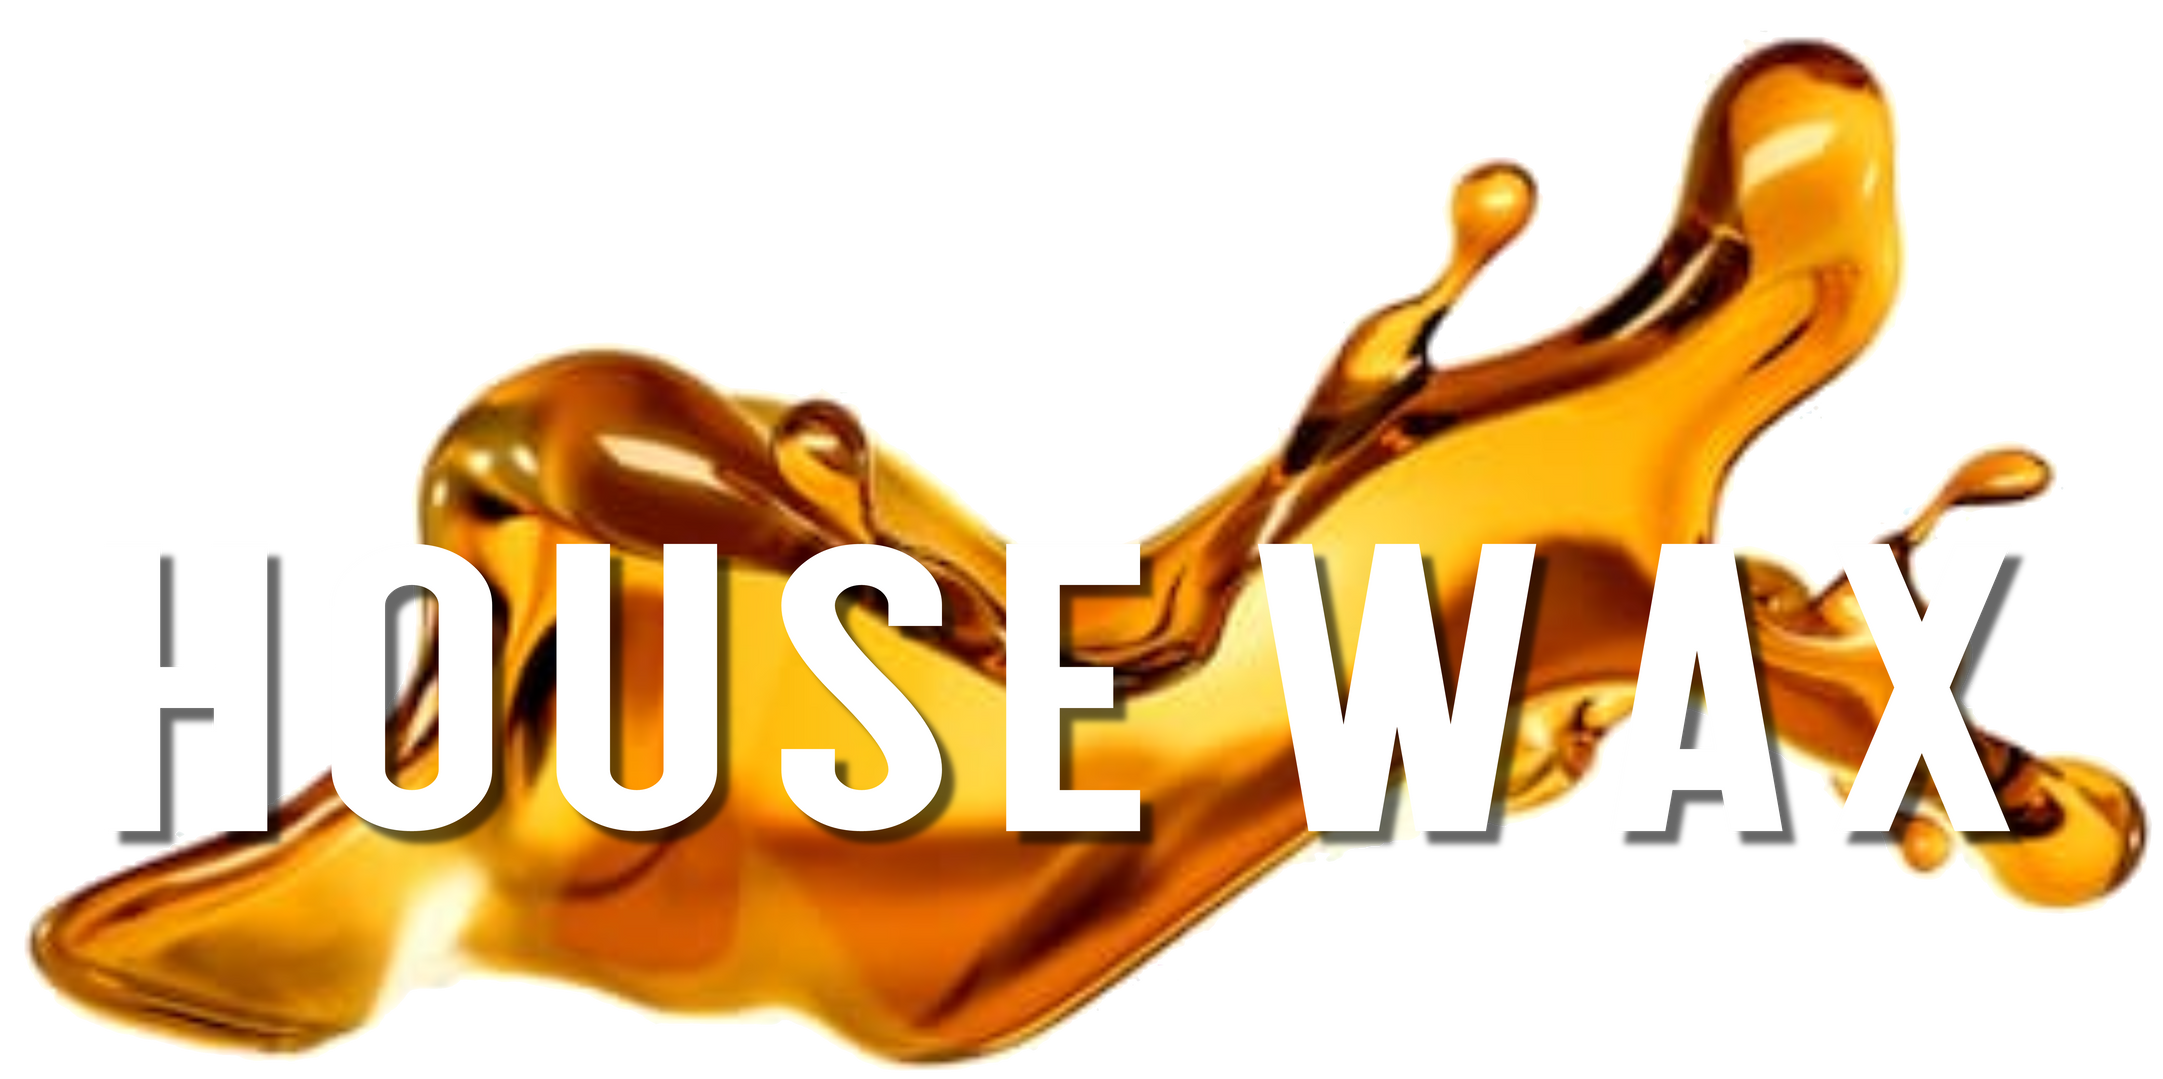 House Wax.png